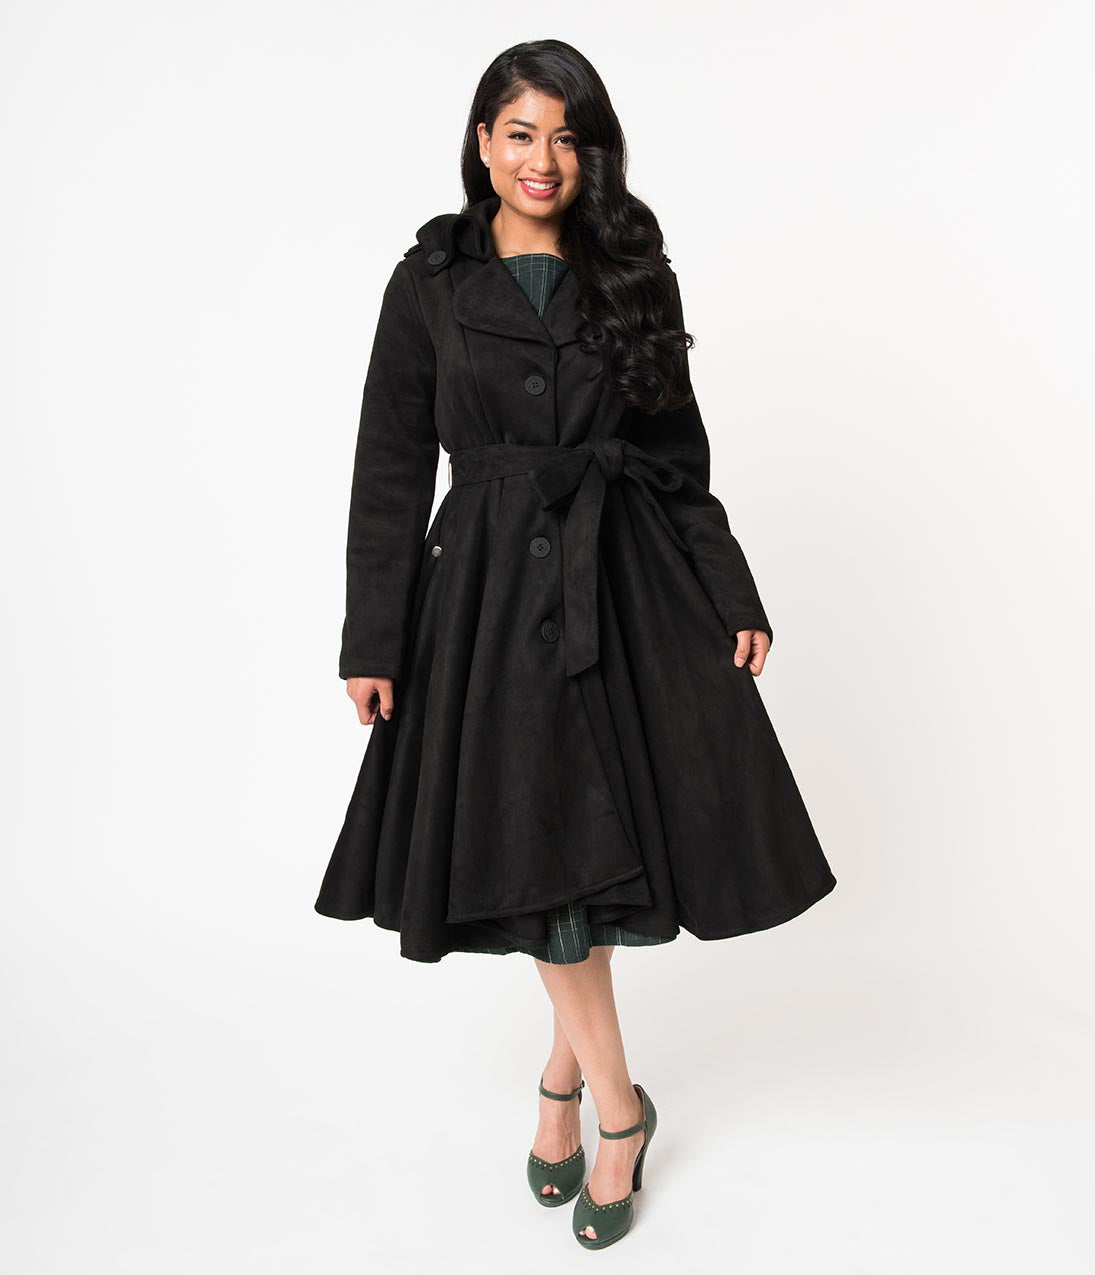 What Did Women Wear in the 1950s? 1950s Fashion Guide Black Suede Button Up Long Sleeve Swing Coat $118.00 AT vintagedancer.com